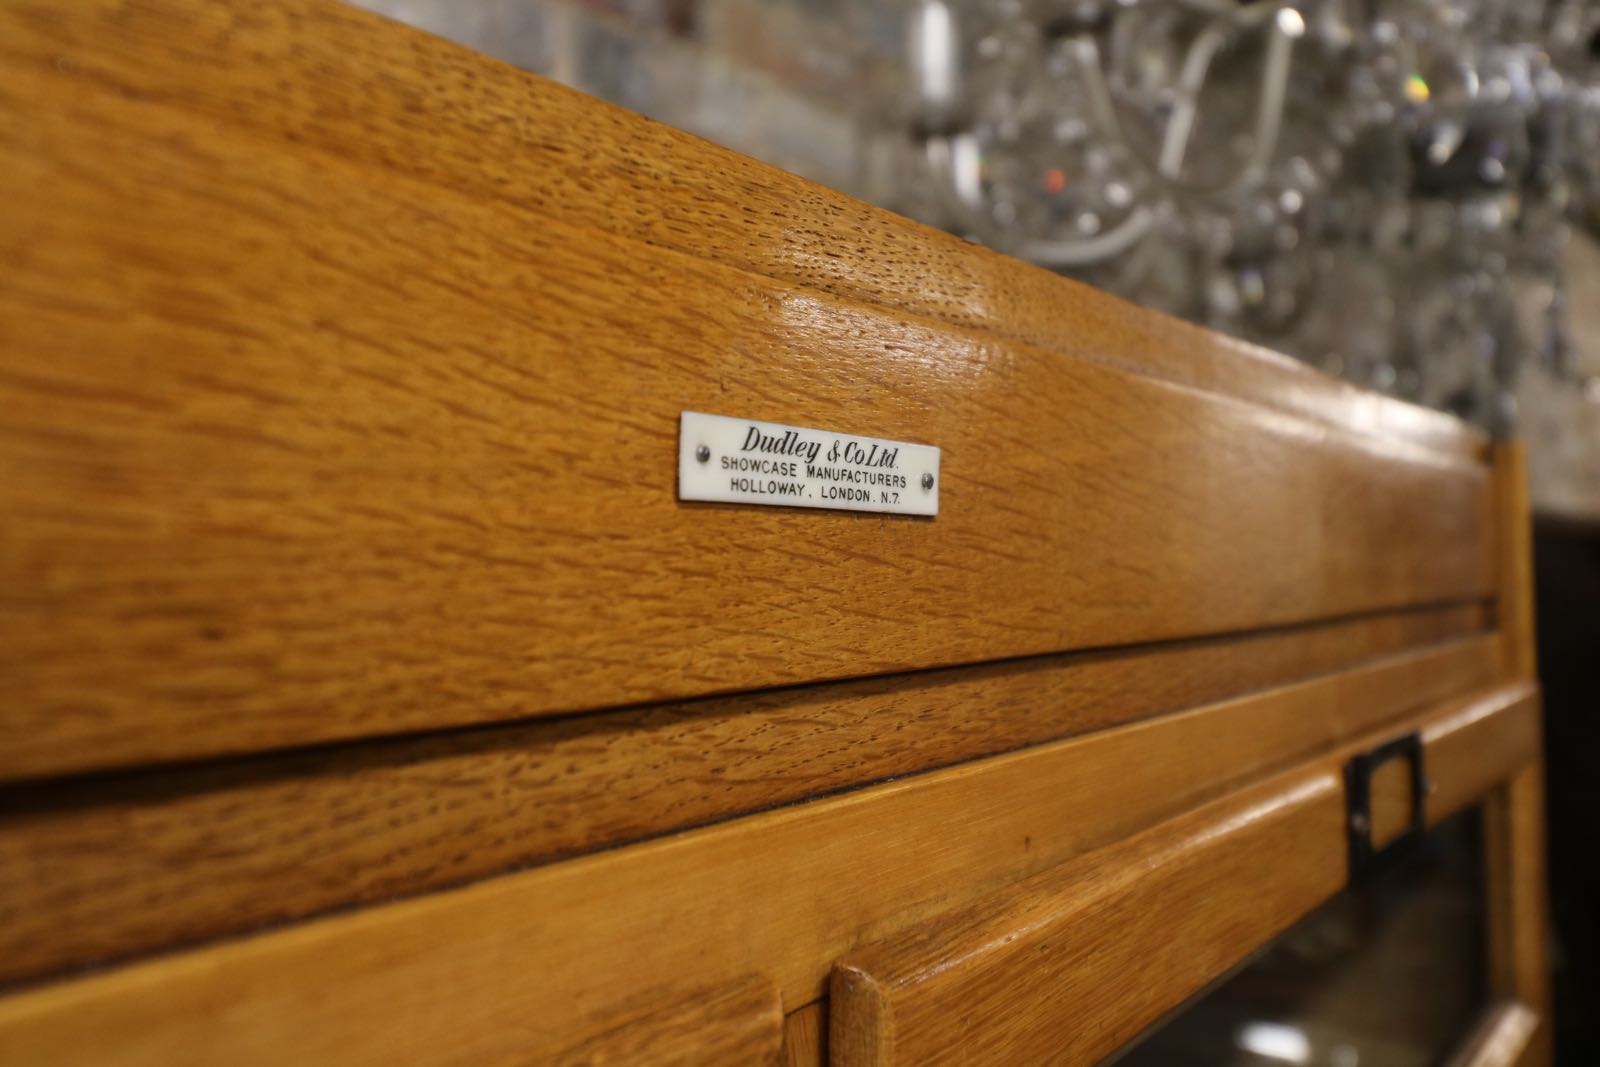 Image showing a fine finish for a piece of antique drawer furniture.